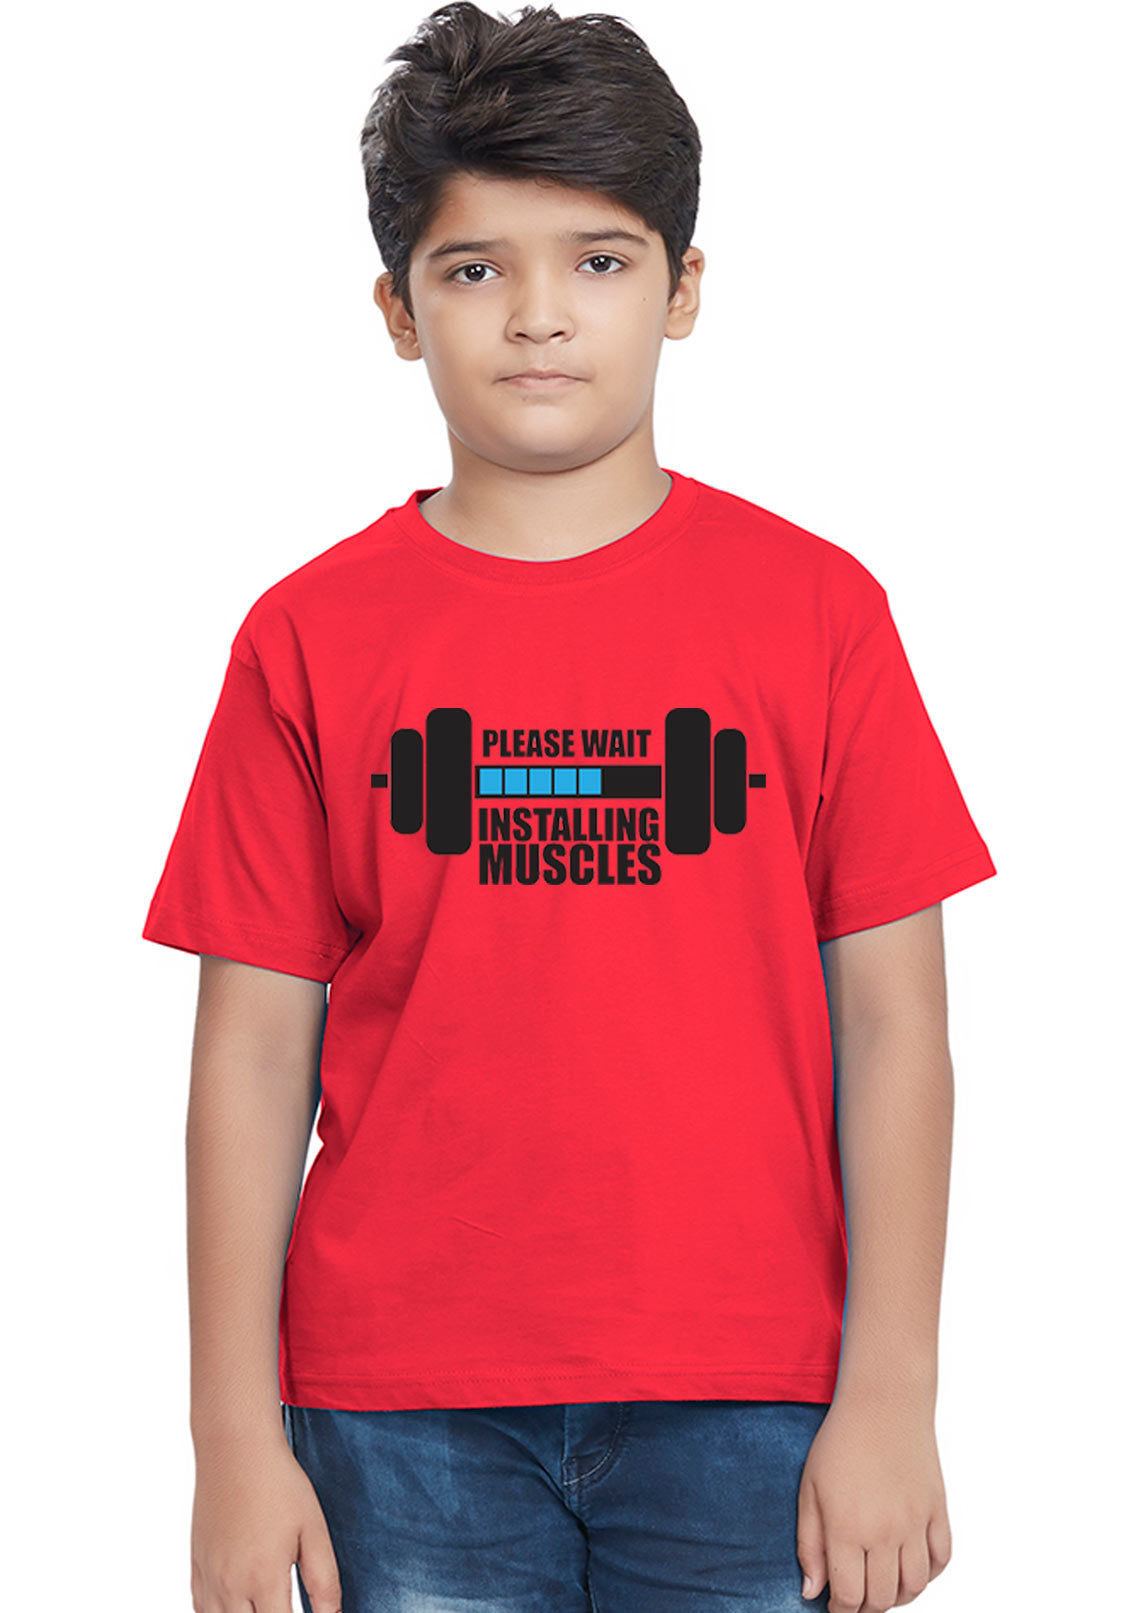 cdeb135e4 Installing Muscles Kids T-Shirt – Wear Your Opinion - WYO.in